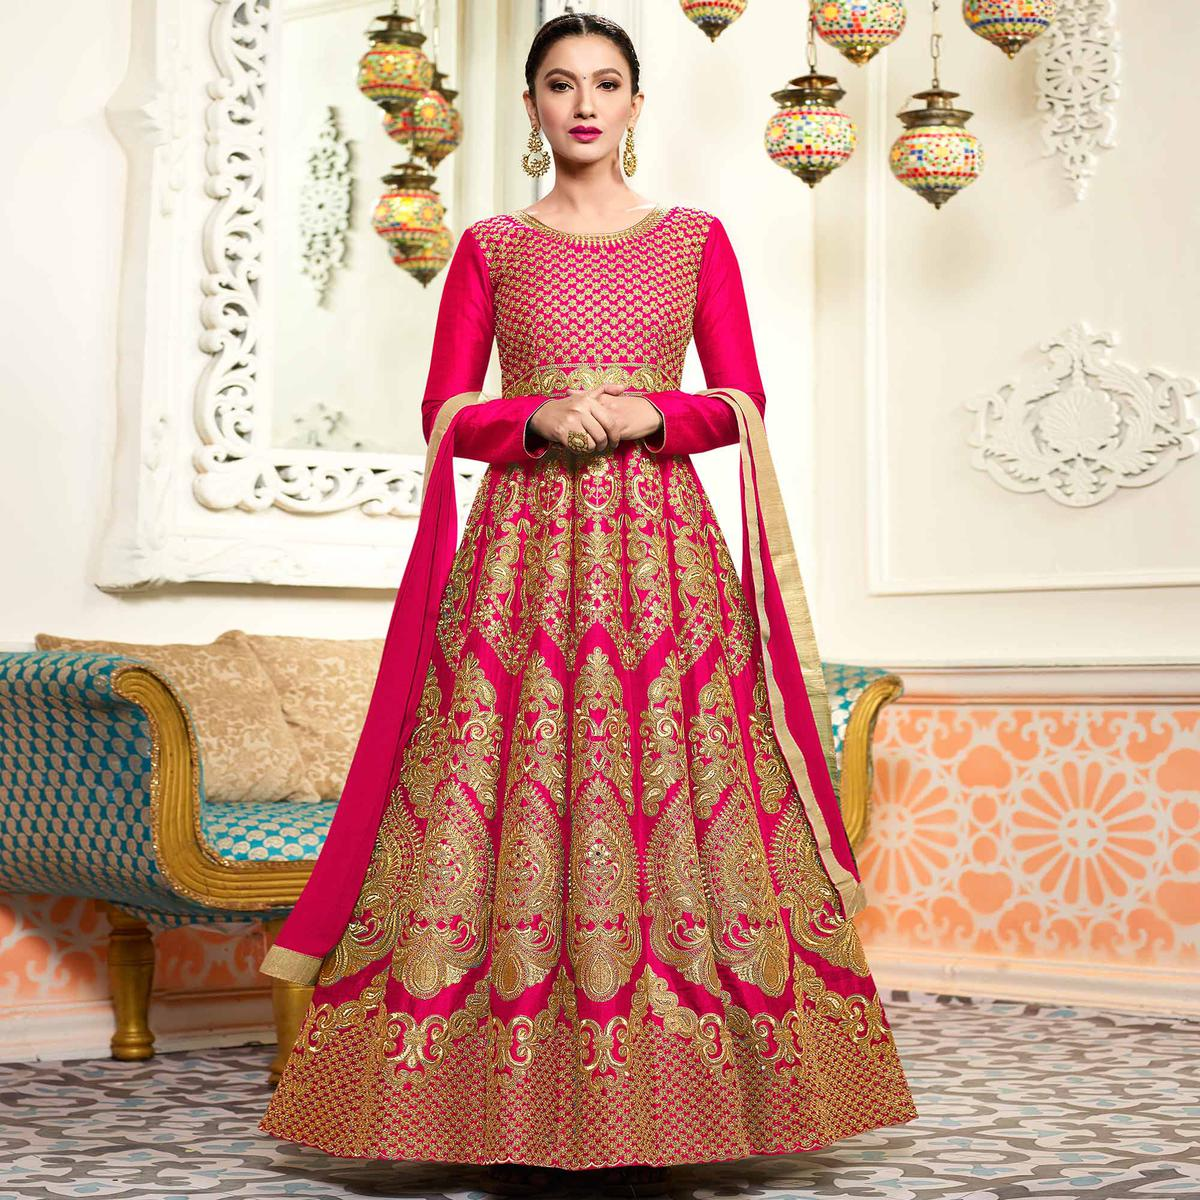 a409f60dca7 Buy Stunning Pink Designer Embroidered Partywear Two Tone Mulberry Silk  Anarkali Suit for womens online India, Best Prices, Reviews - Peachmode